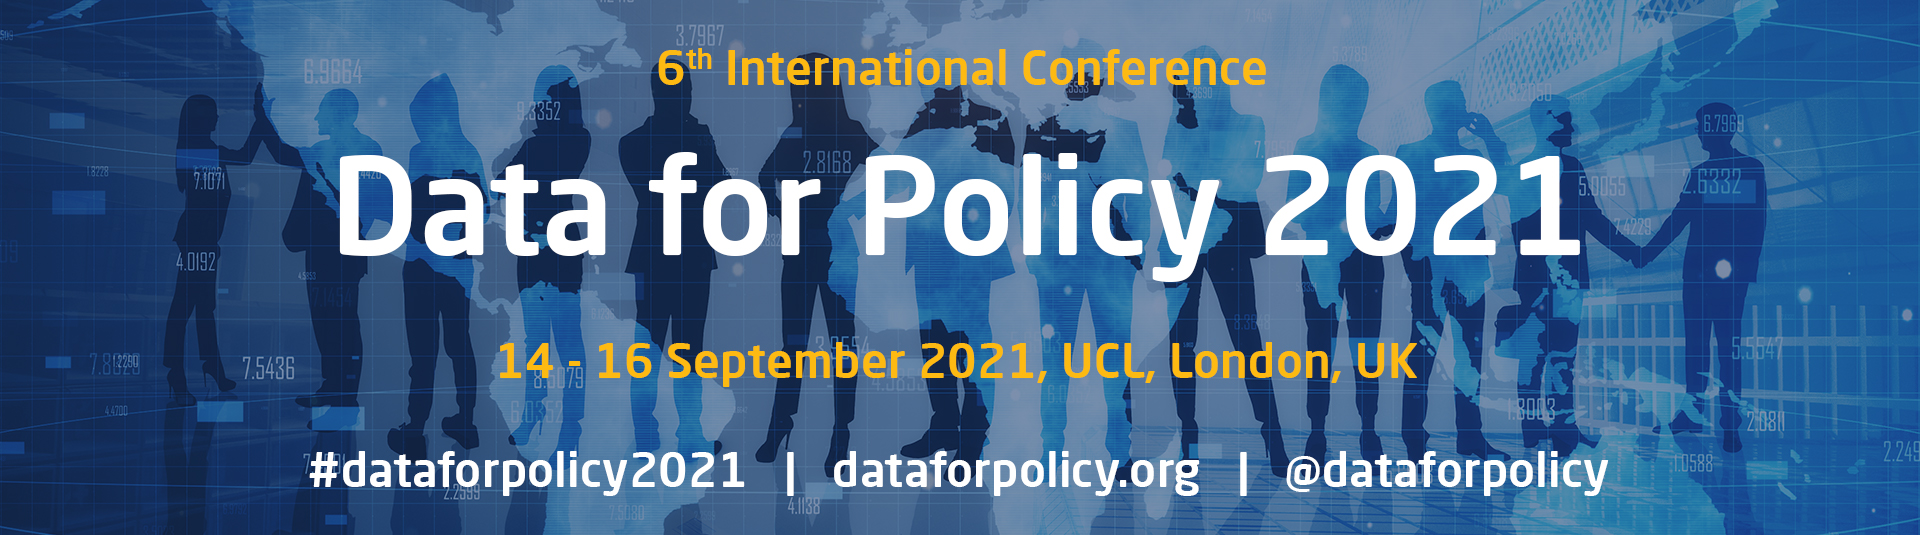 Data for Policy 2021